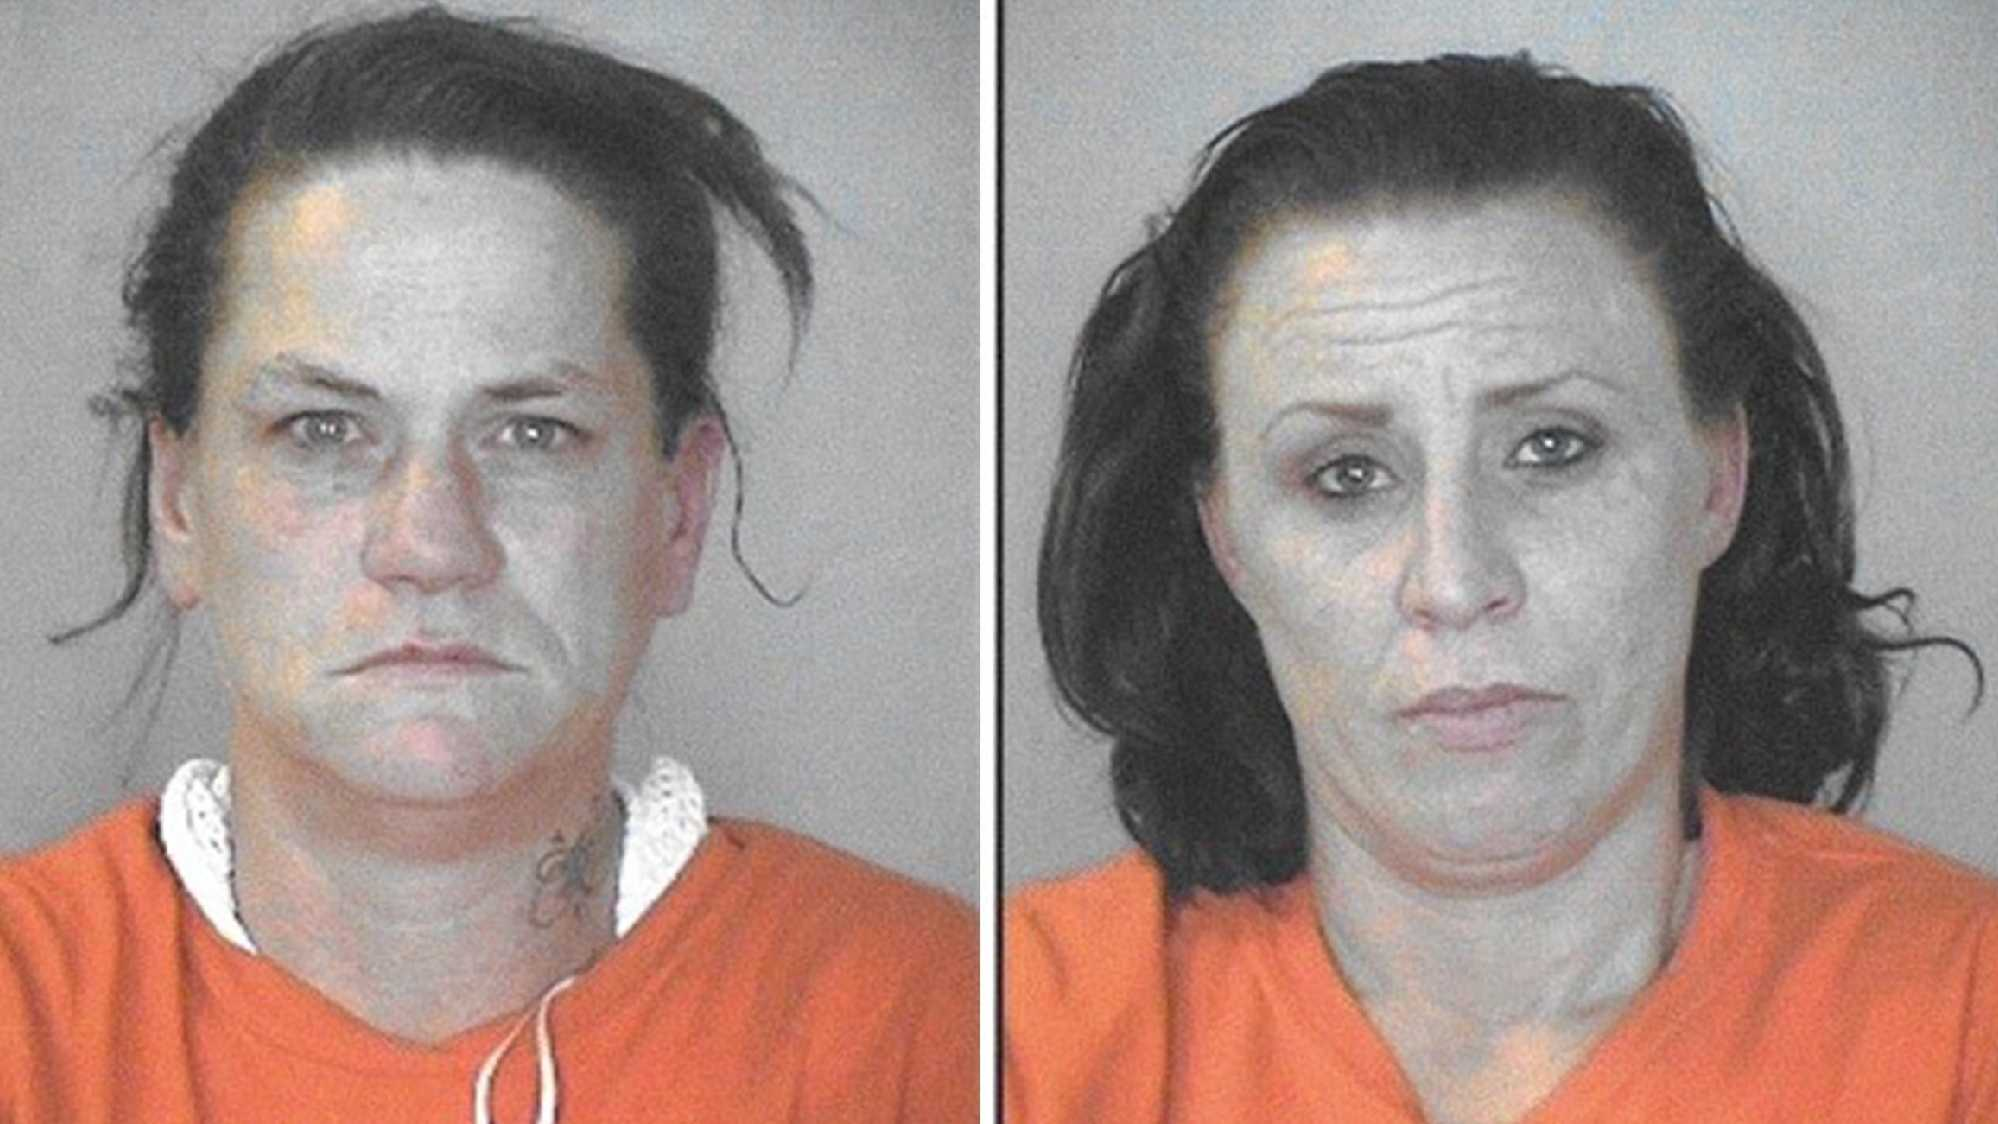 Tammy Waldrop, 40, (left) and Angela Cross, 35, (right) both of Oroville, were arrested in connection to an assault on a man.